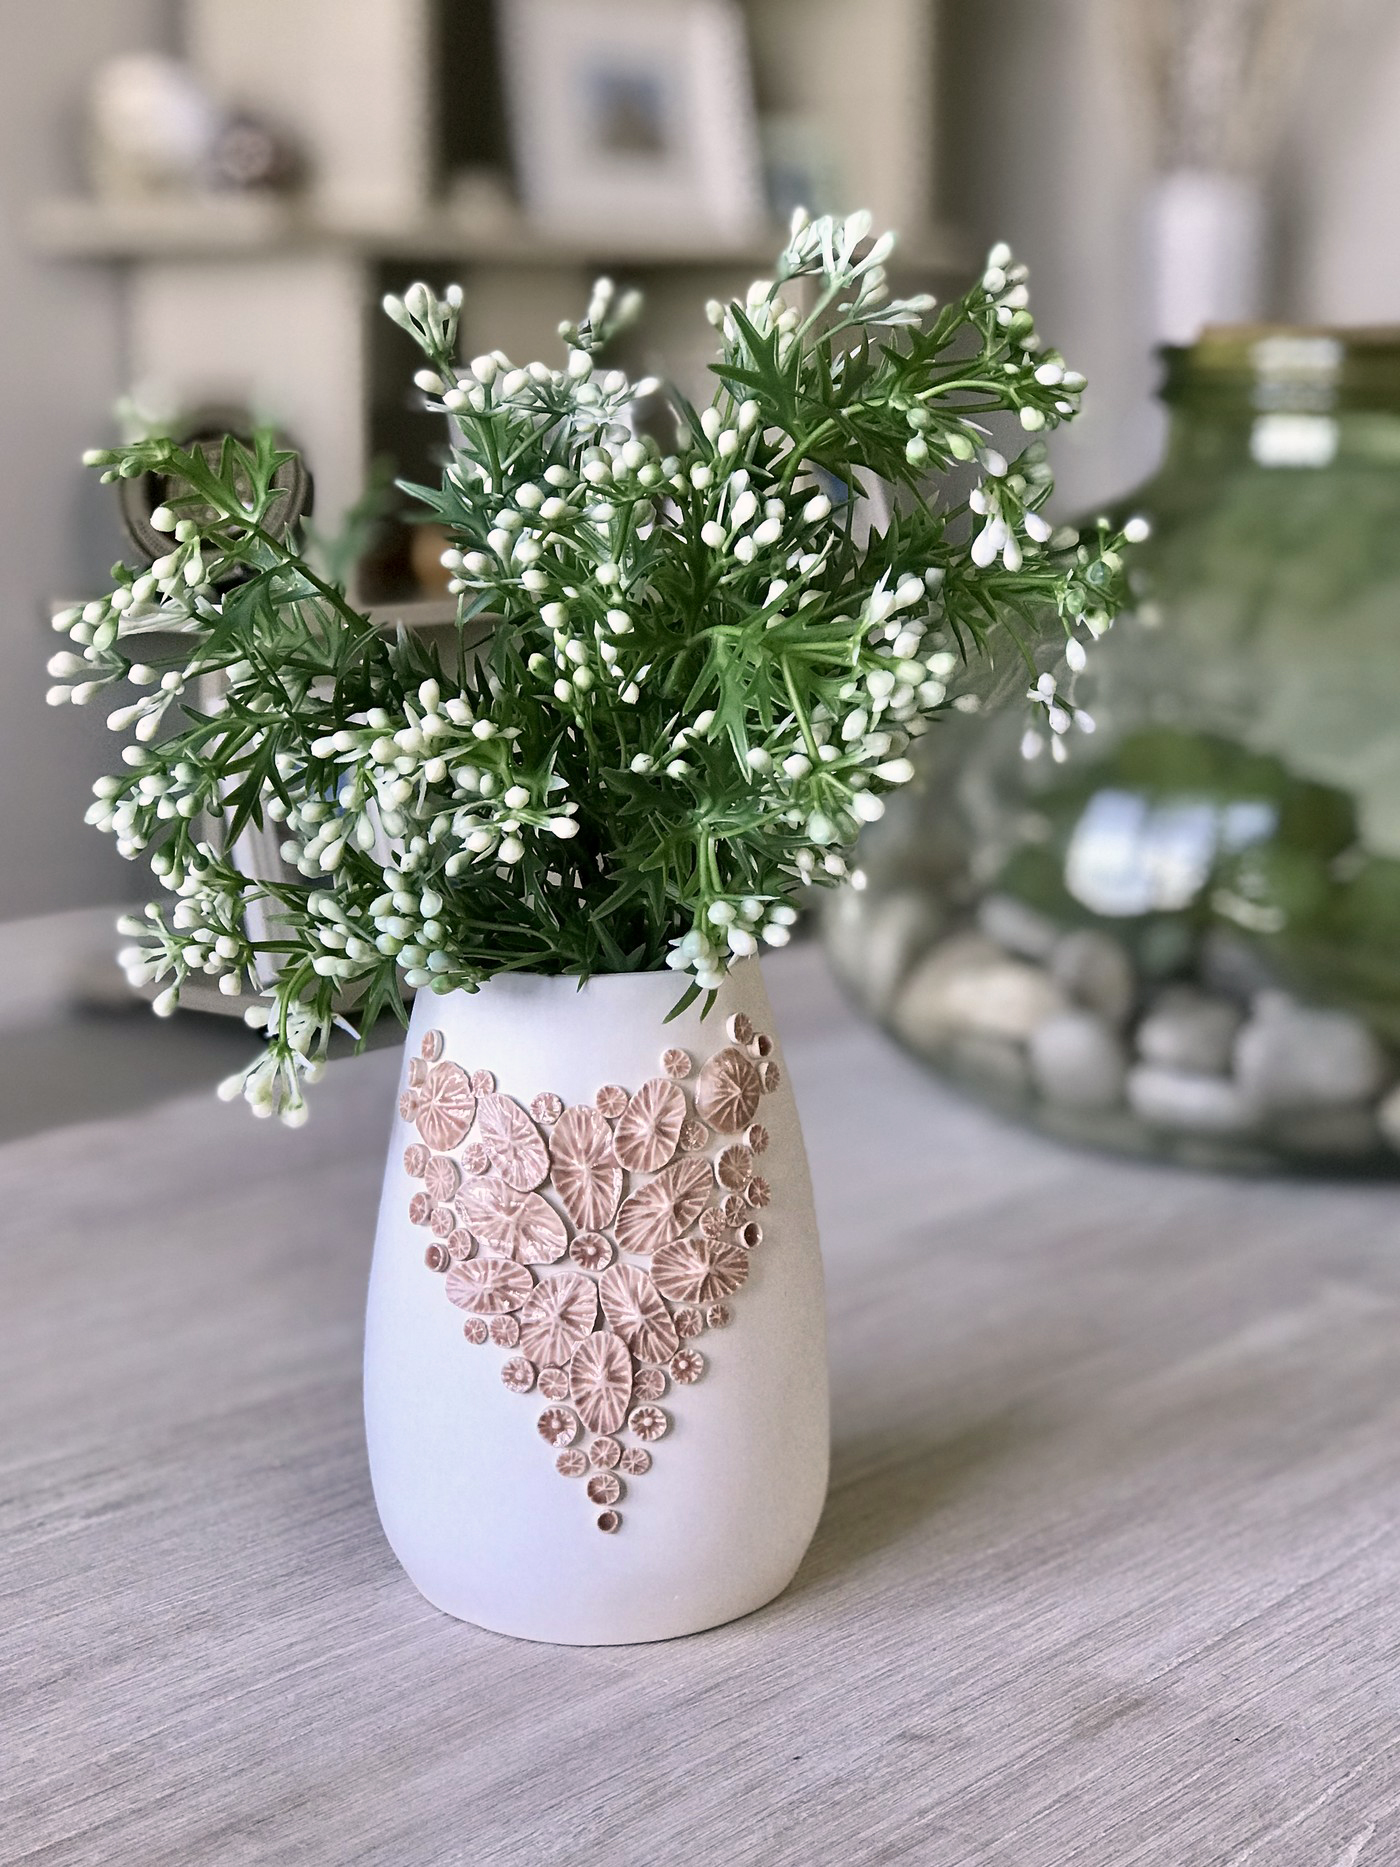 Smooth, matt white earthenware vase with a blush pink glazed heart shaped arrangement of coral polup-like embelishments